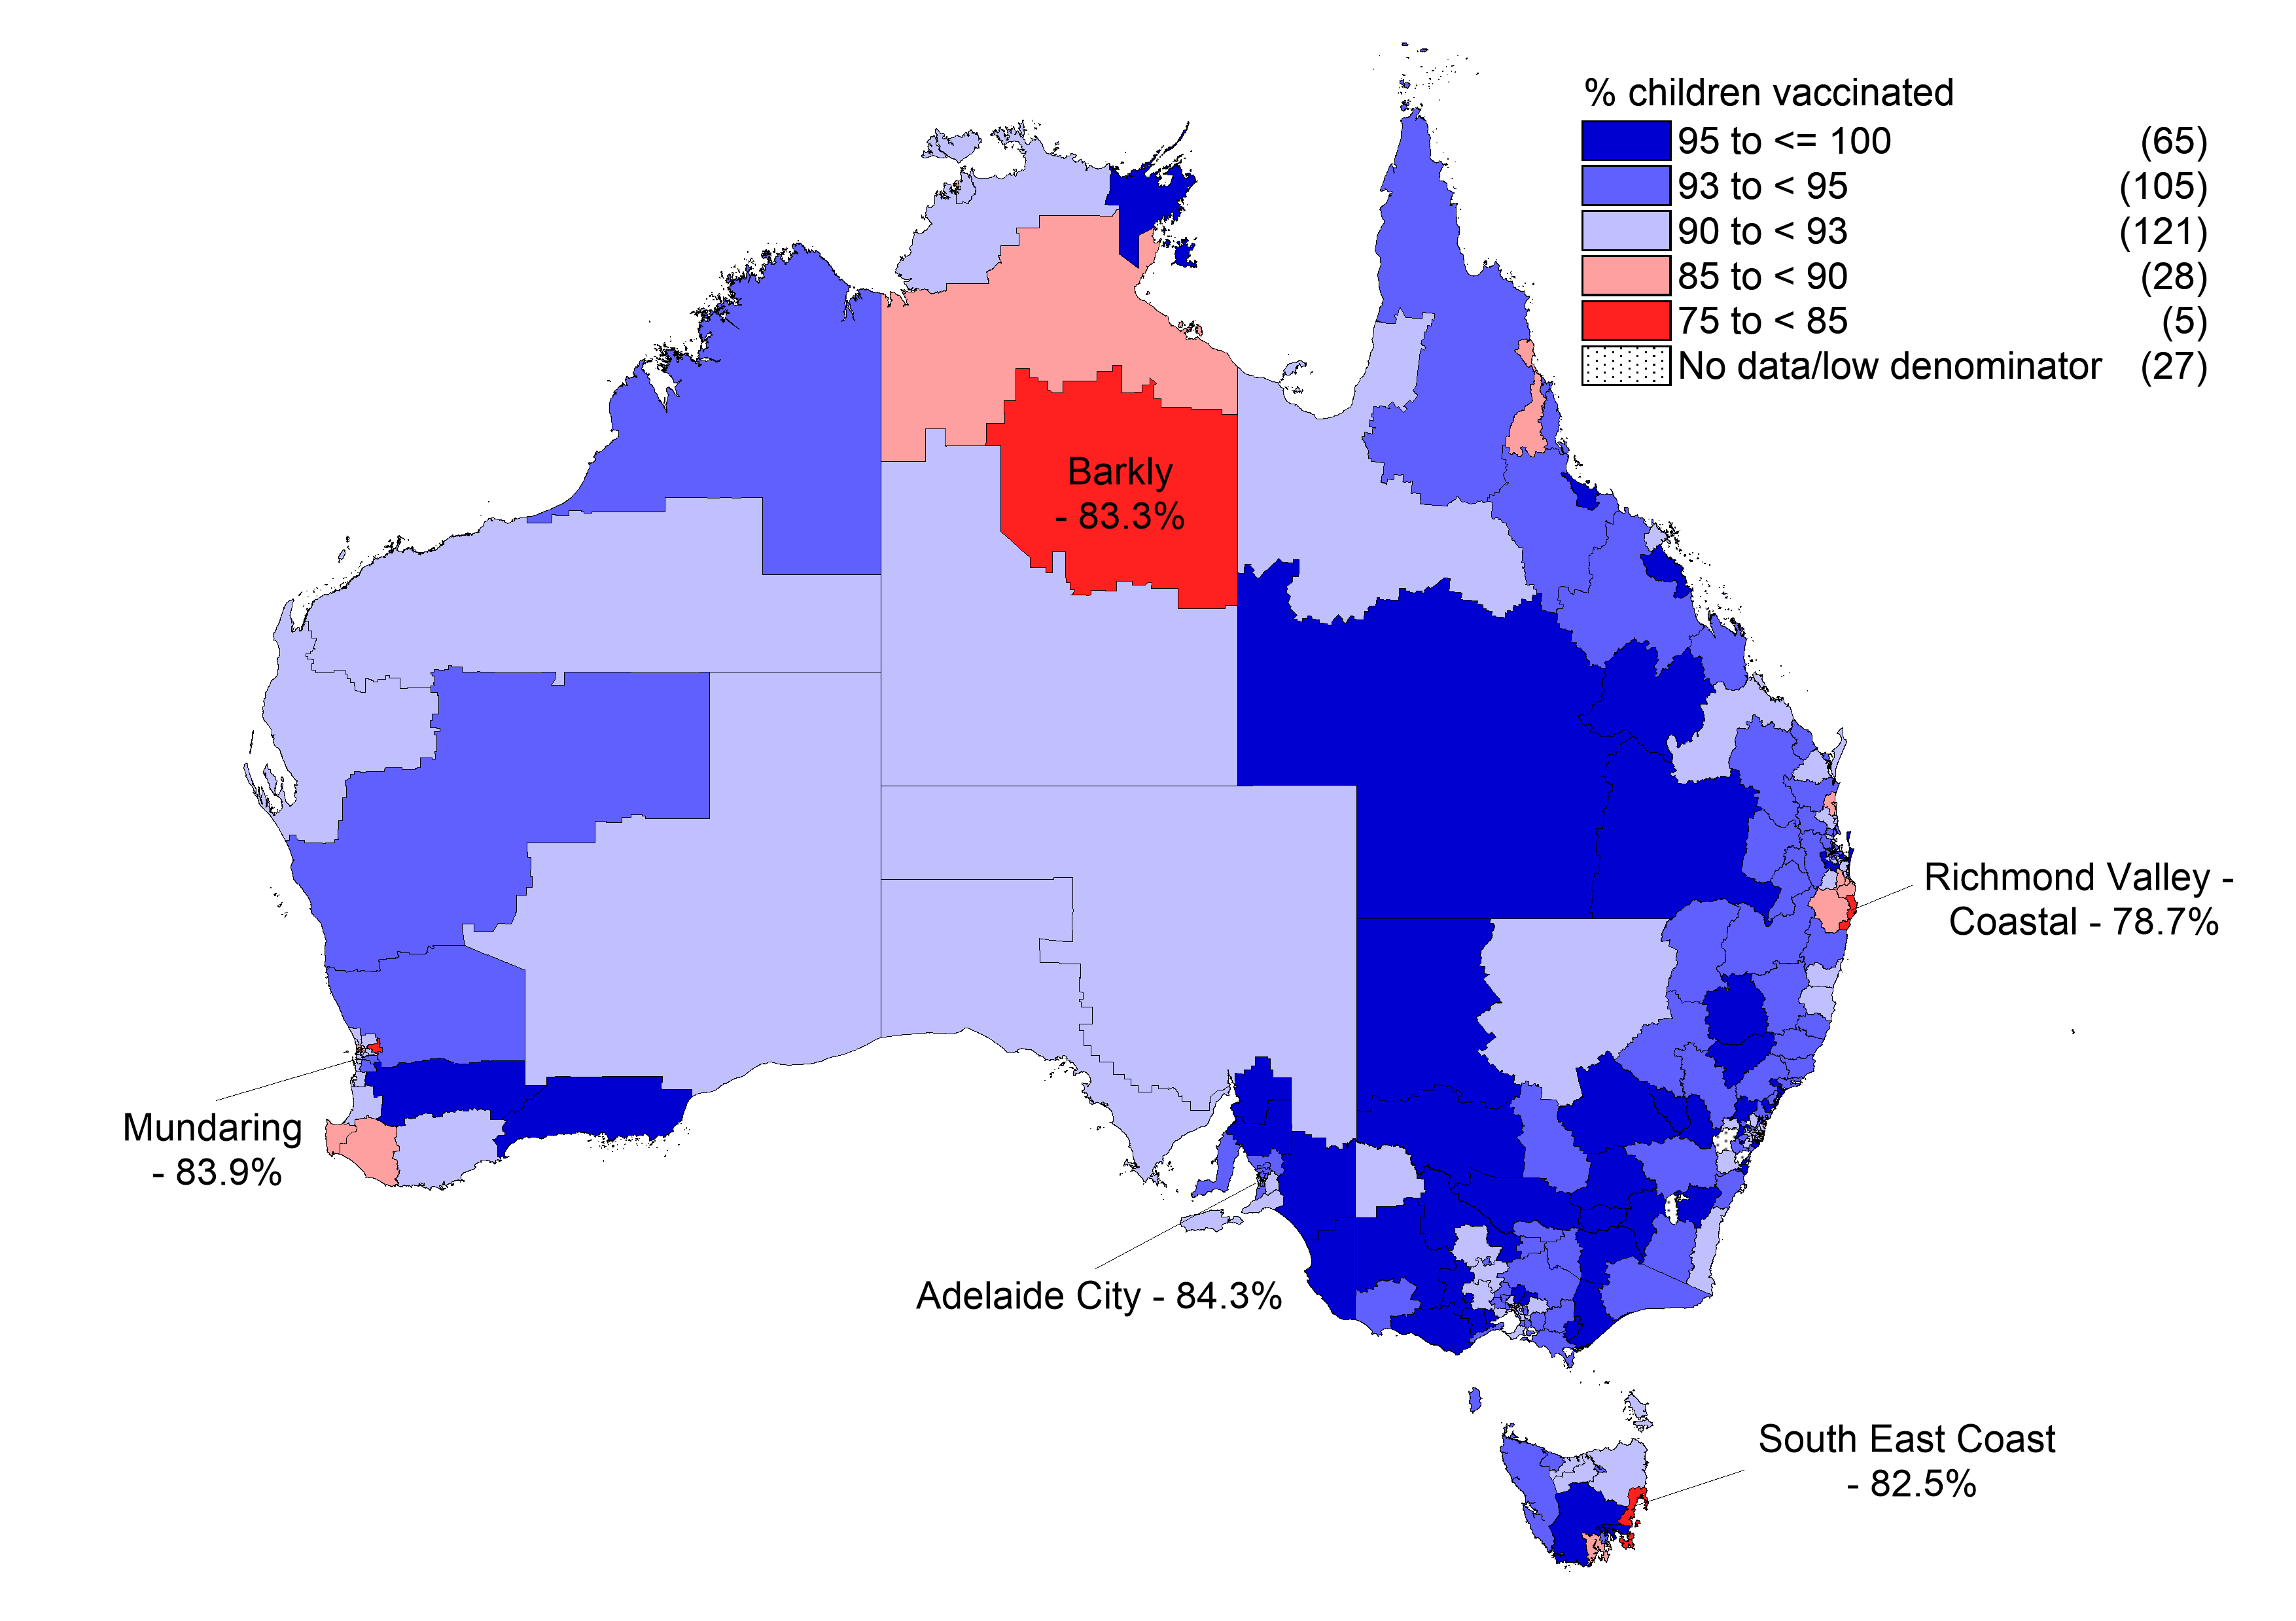 Measles, mumps, rubella (MMR) vaccine coverage at 24 months of age (2 doses) by Statistical Area 3, Australia, 2017